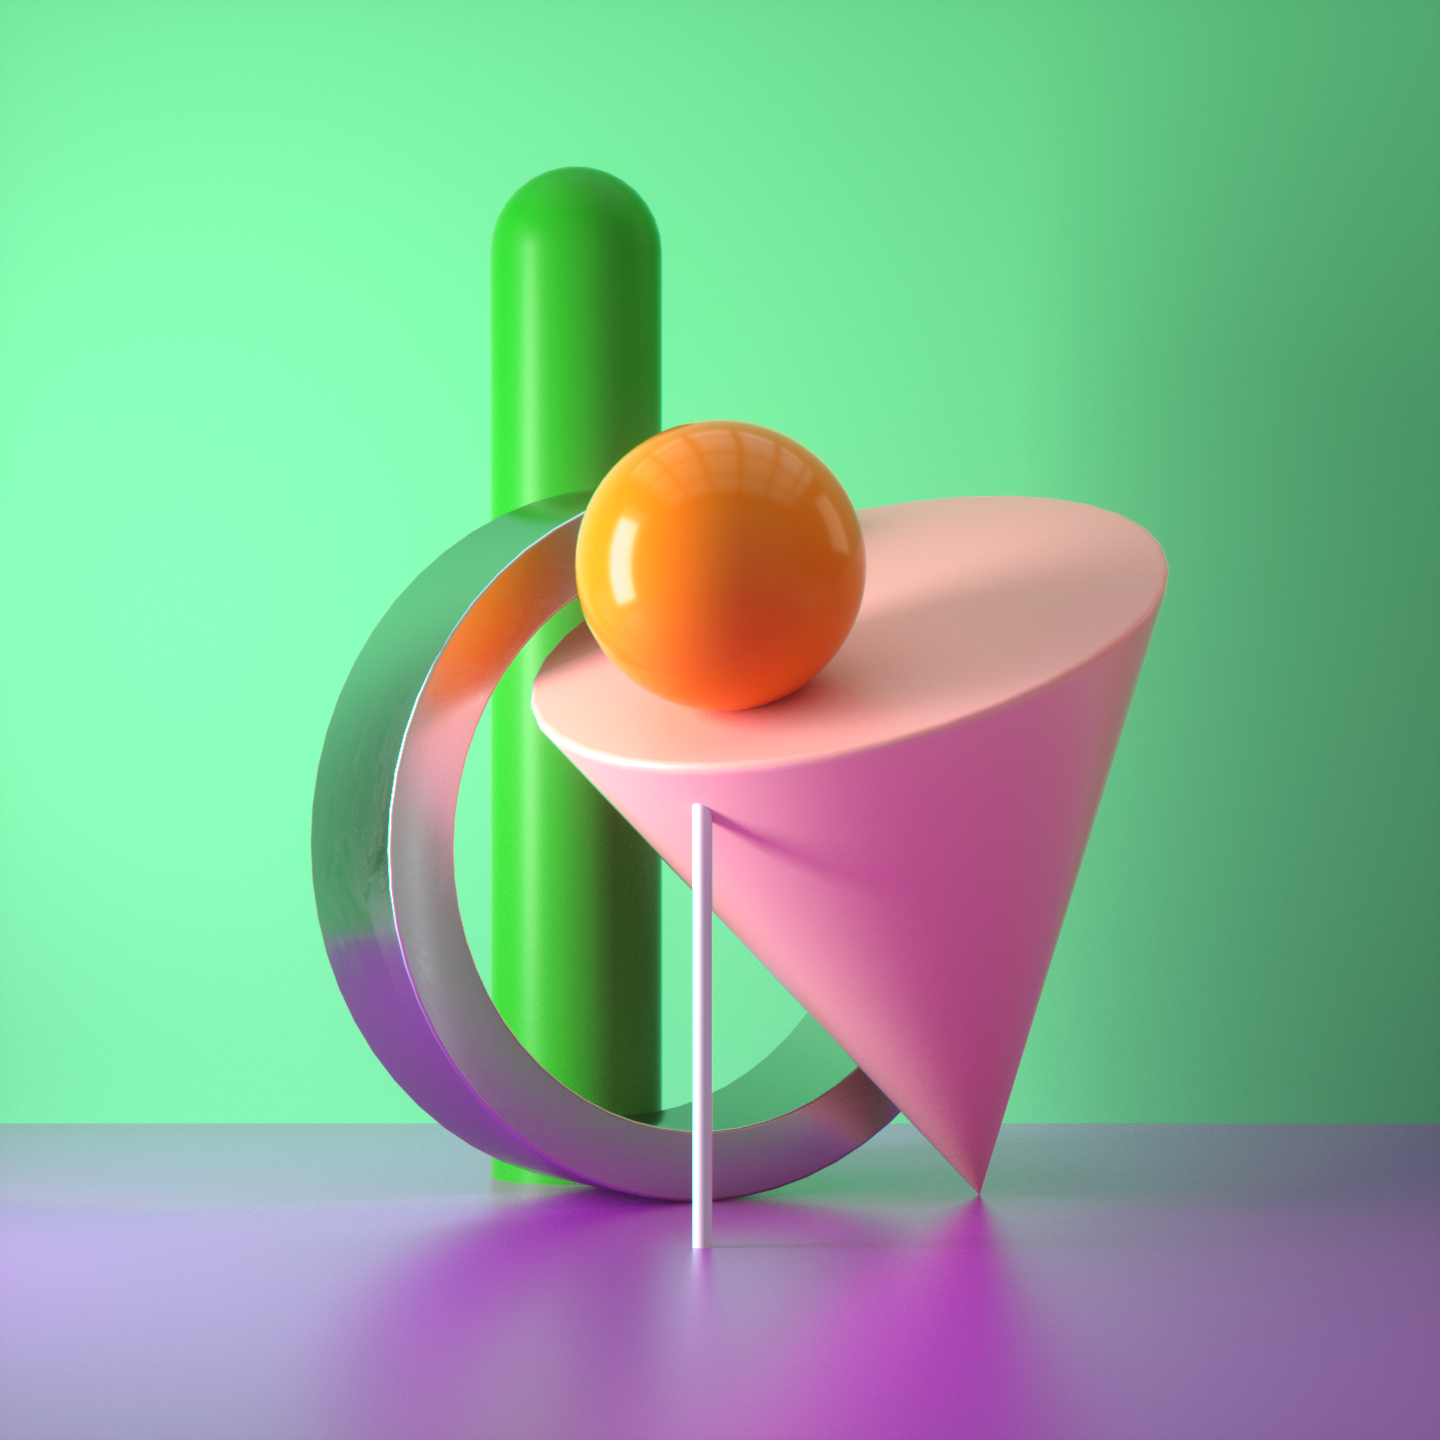 0105.png